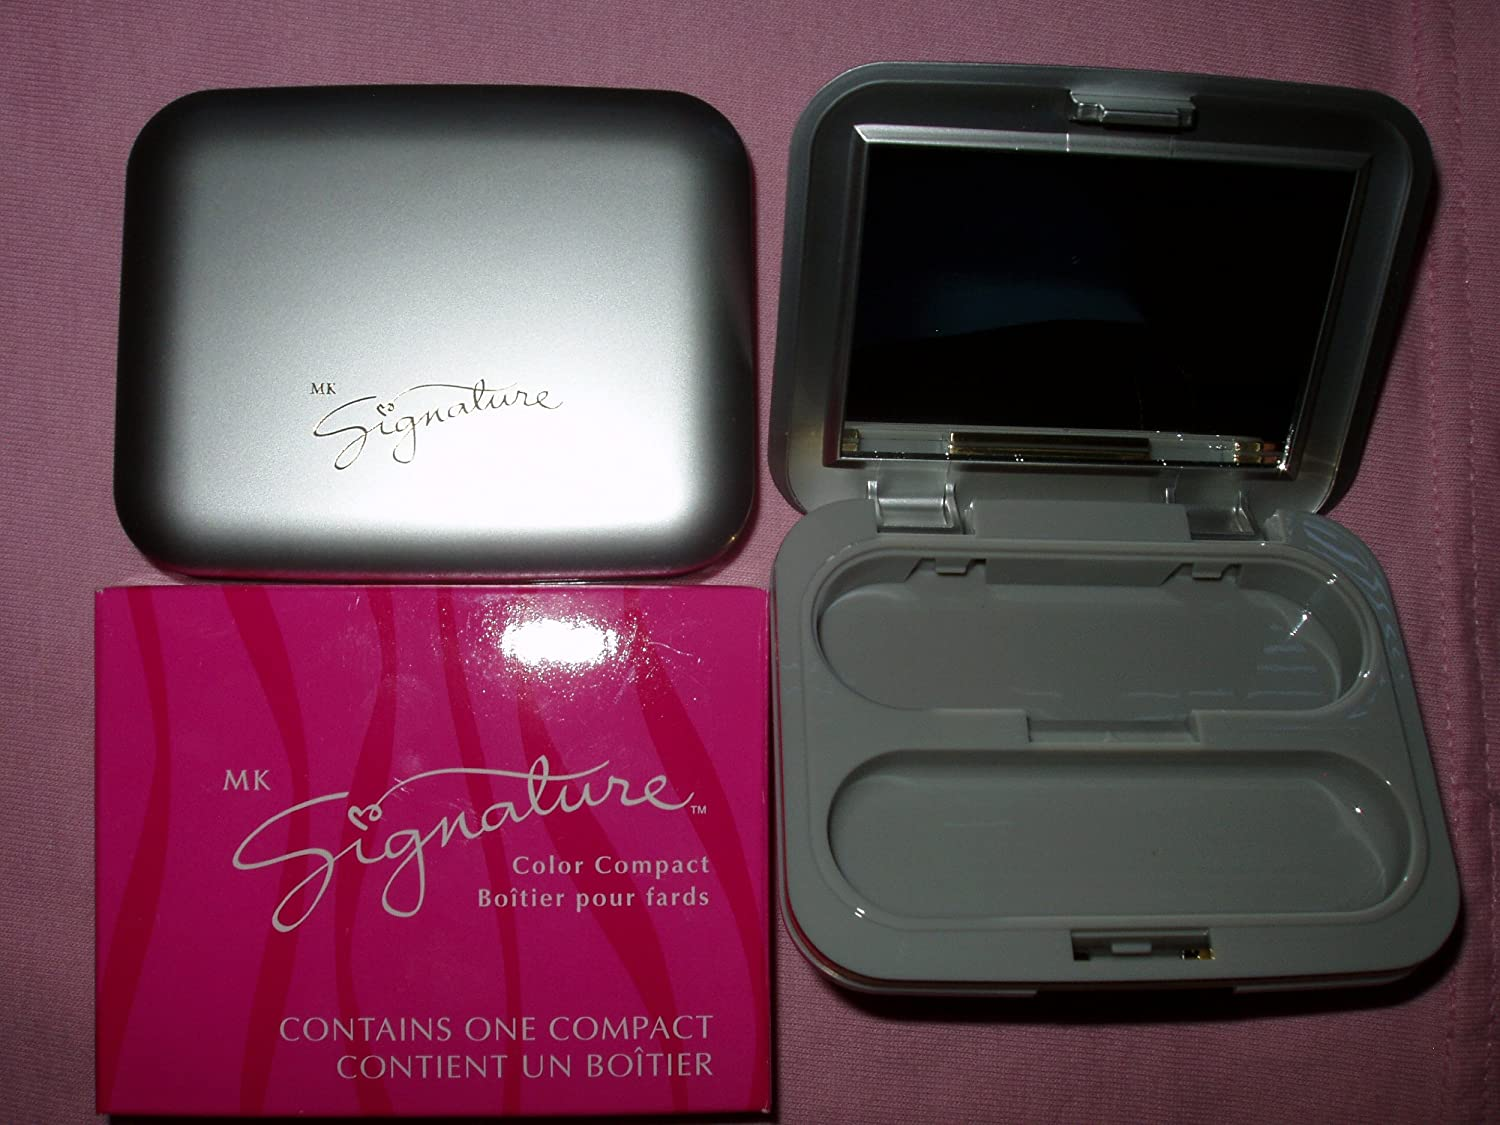 Mary Kay Signature Color Compact (2502 Platinum)